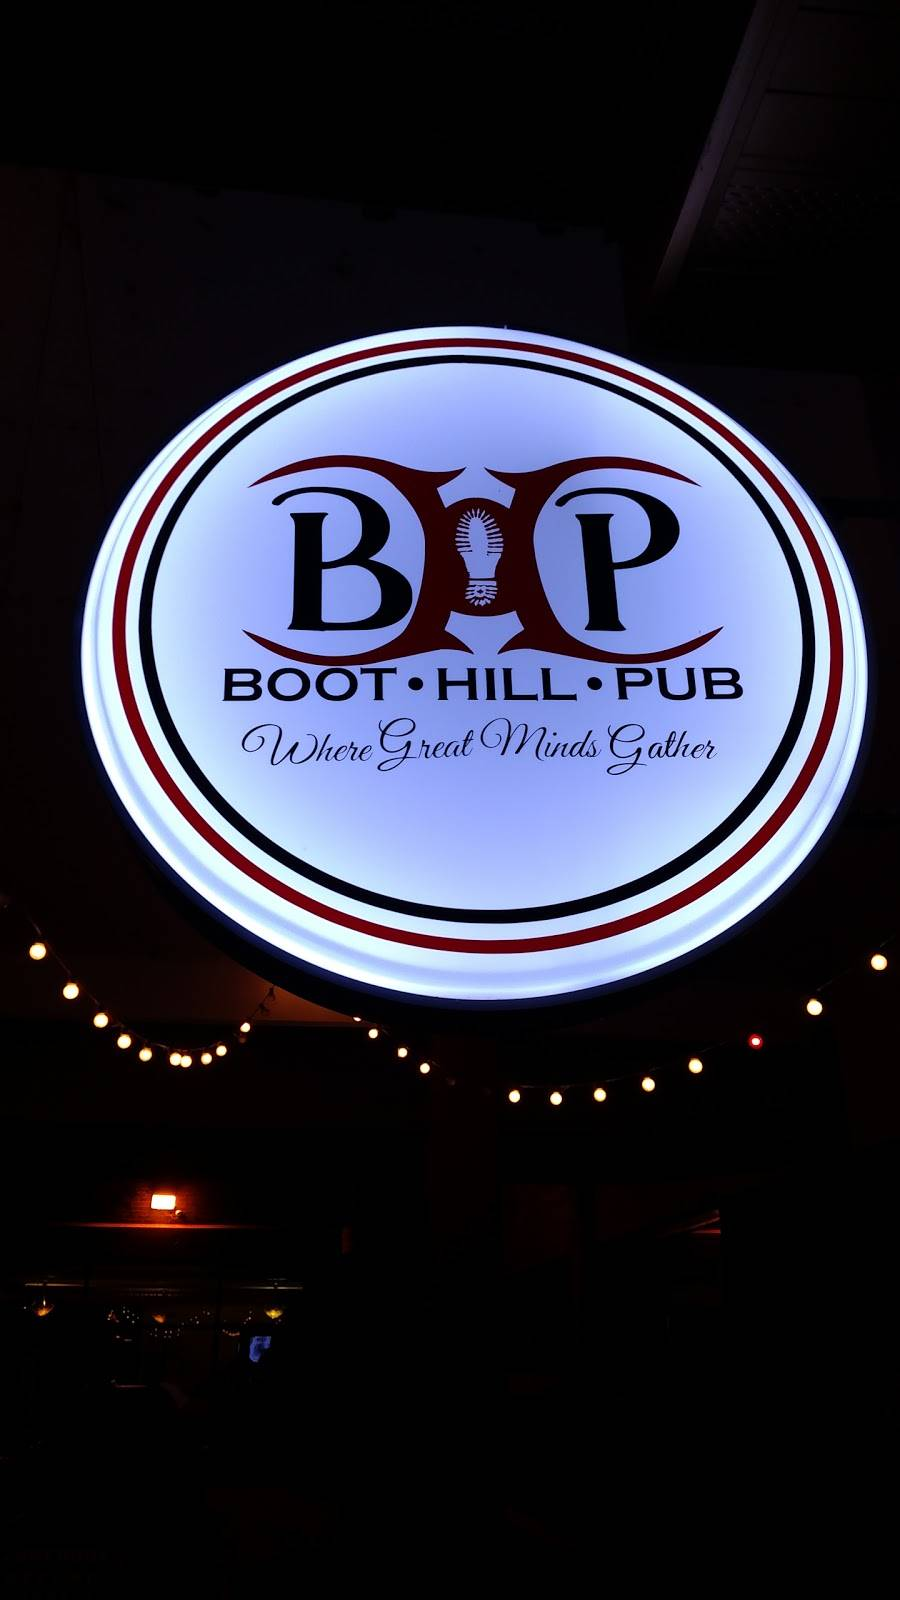 Boot Hill Pub | restaurant | 1501 St Andrew St, La Crosse, WI 54603, USA | 6087823826 OR +1 608-782-3826